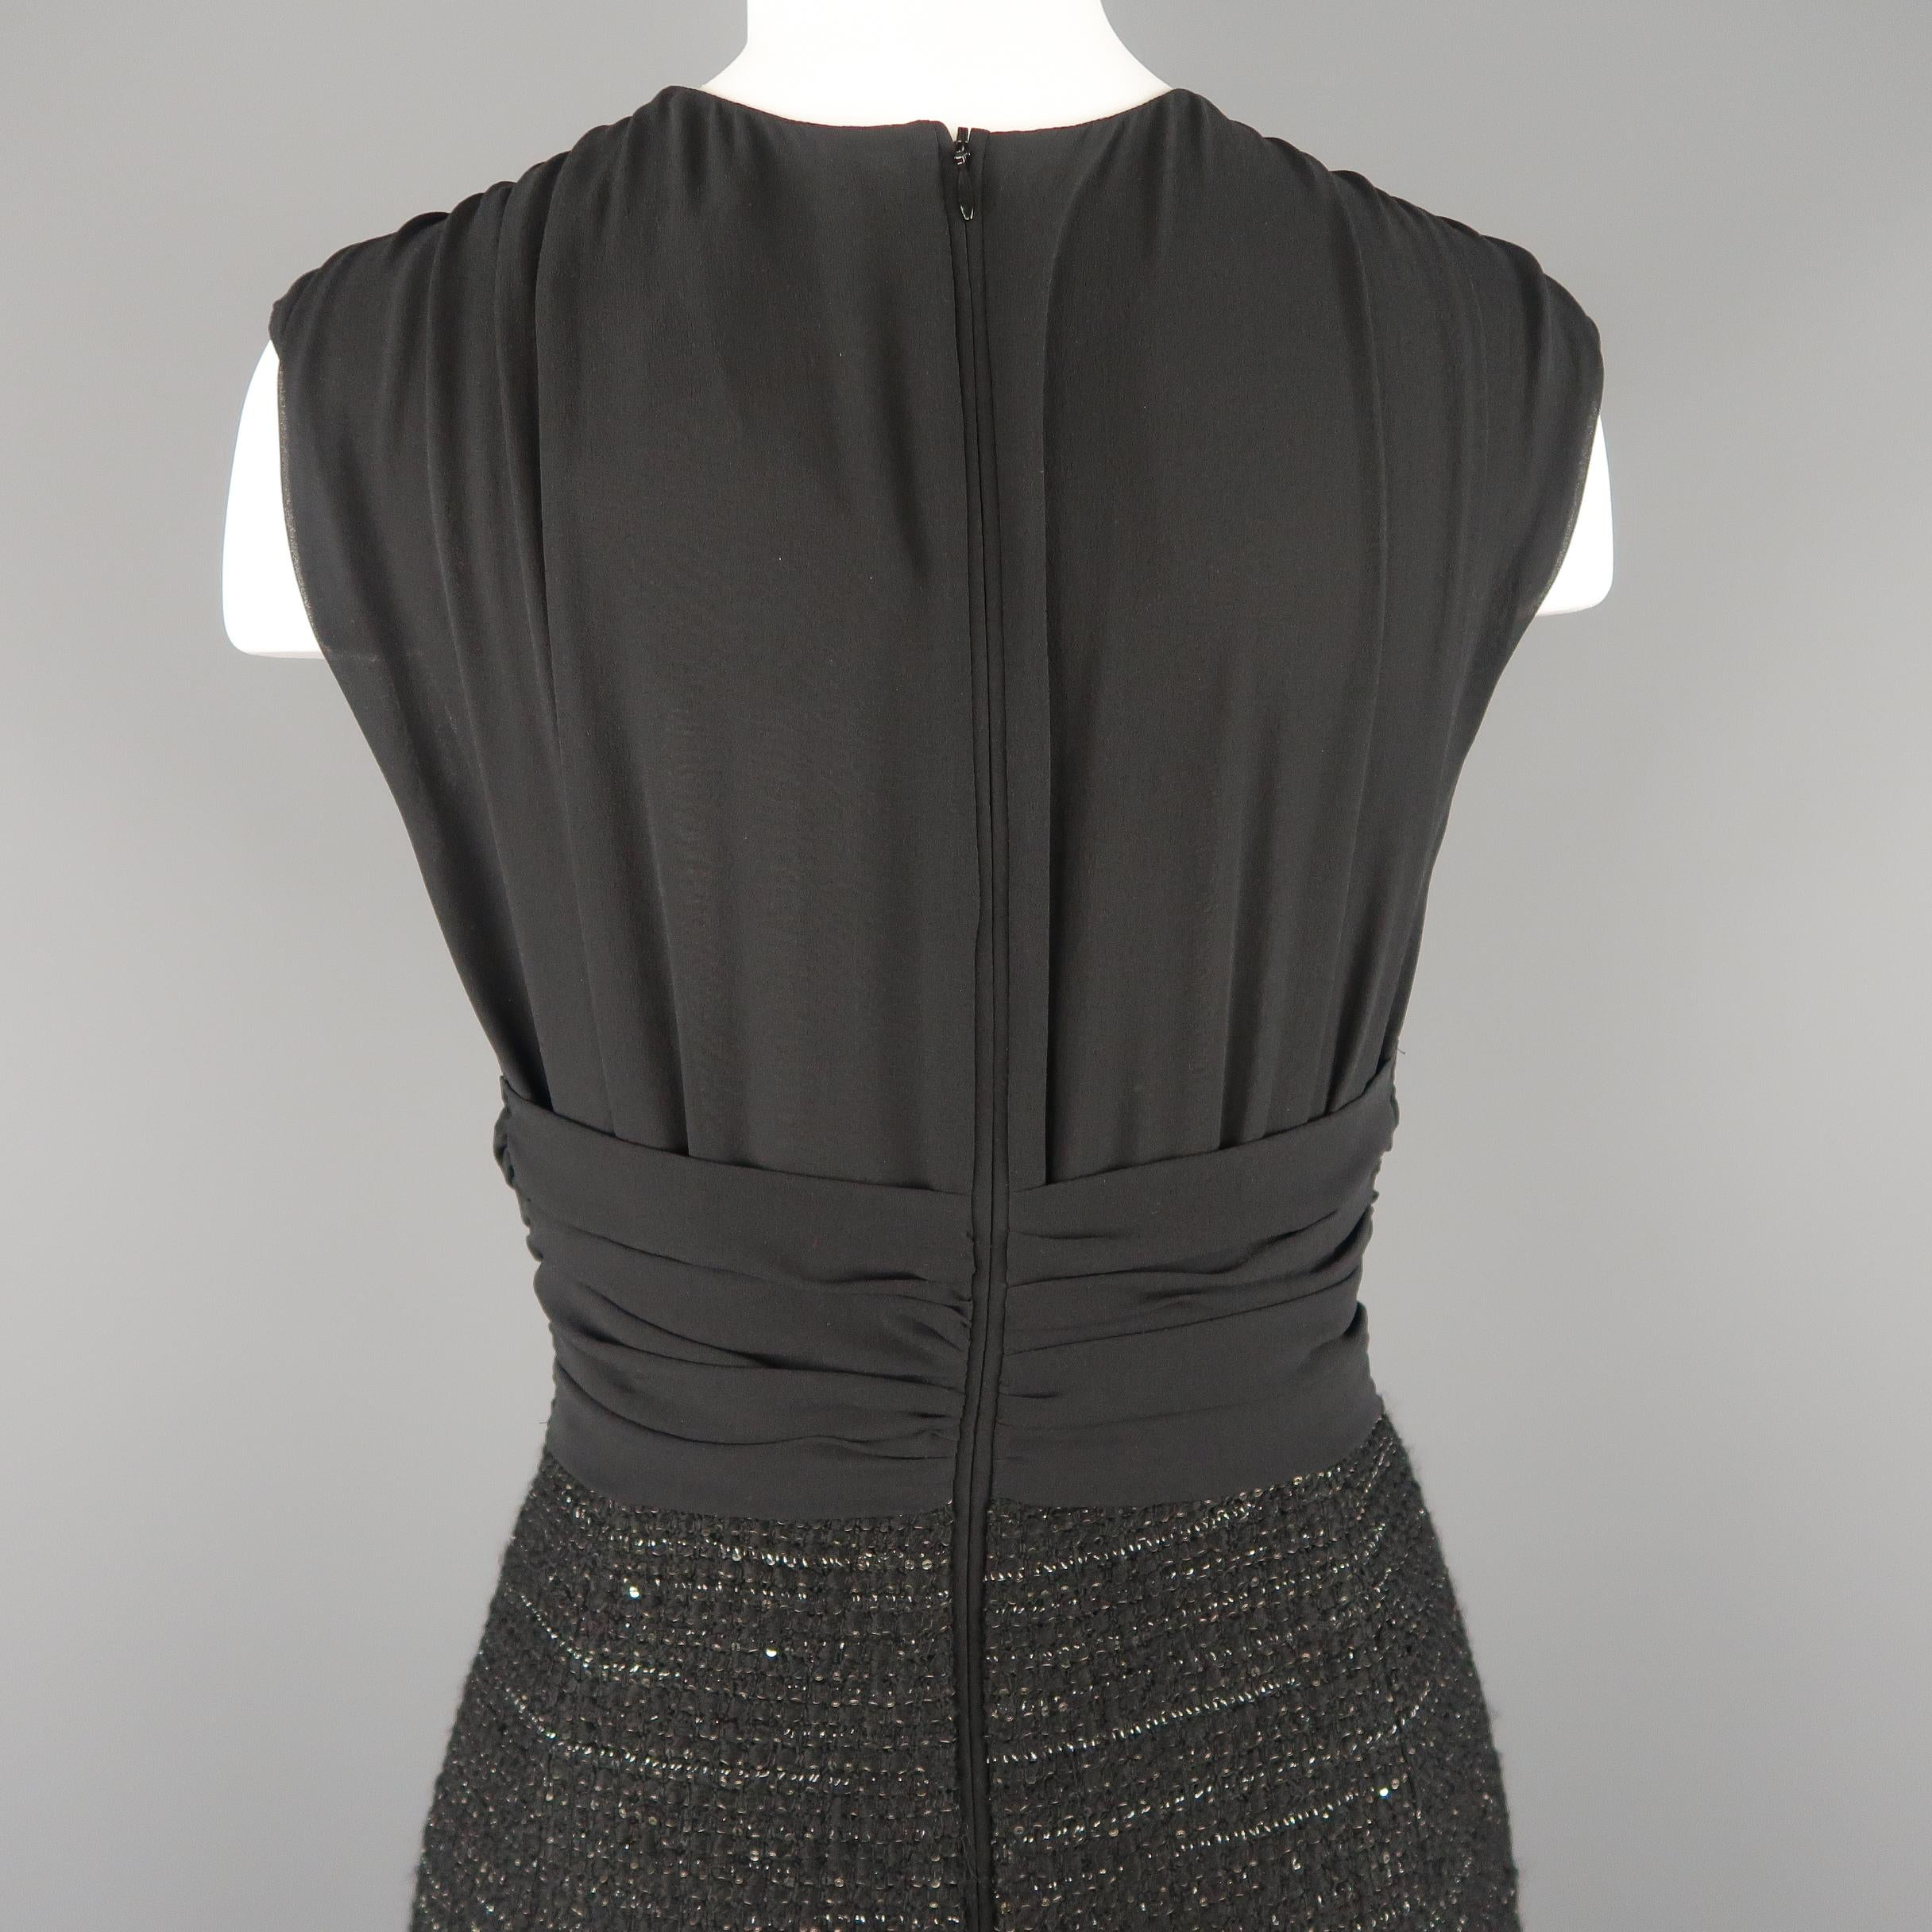 c4acc9fac63 MAX MARA Size 6 Black Draped Chiffon Top Sparkle Tweed Skirt Cocktail Dress  For Sale at 1stdibs